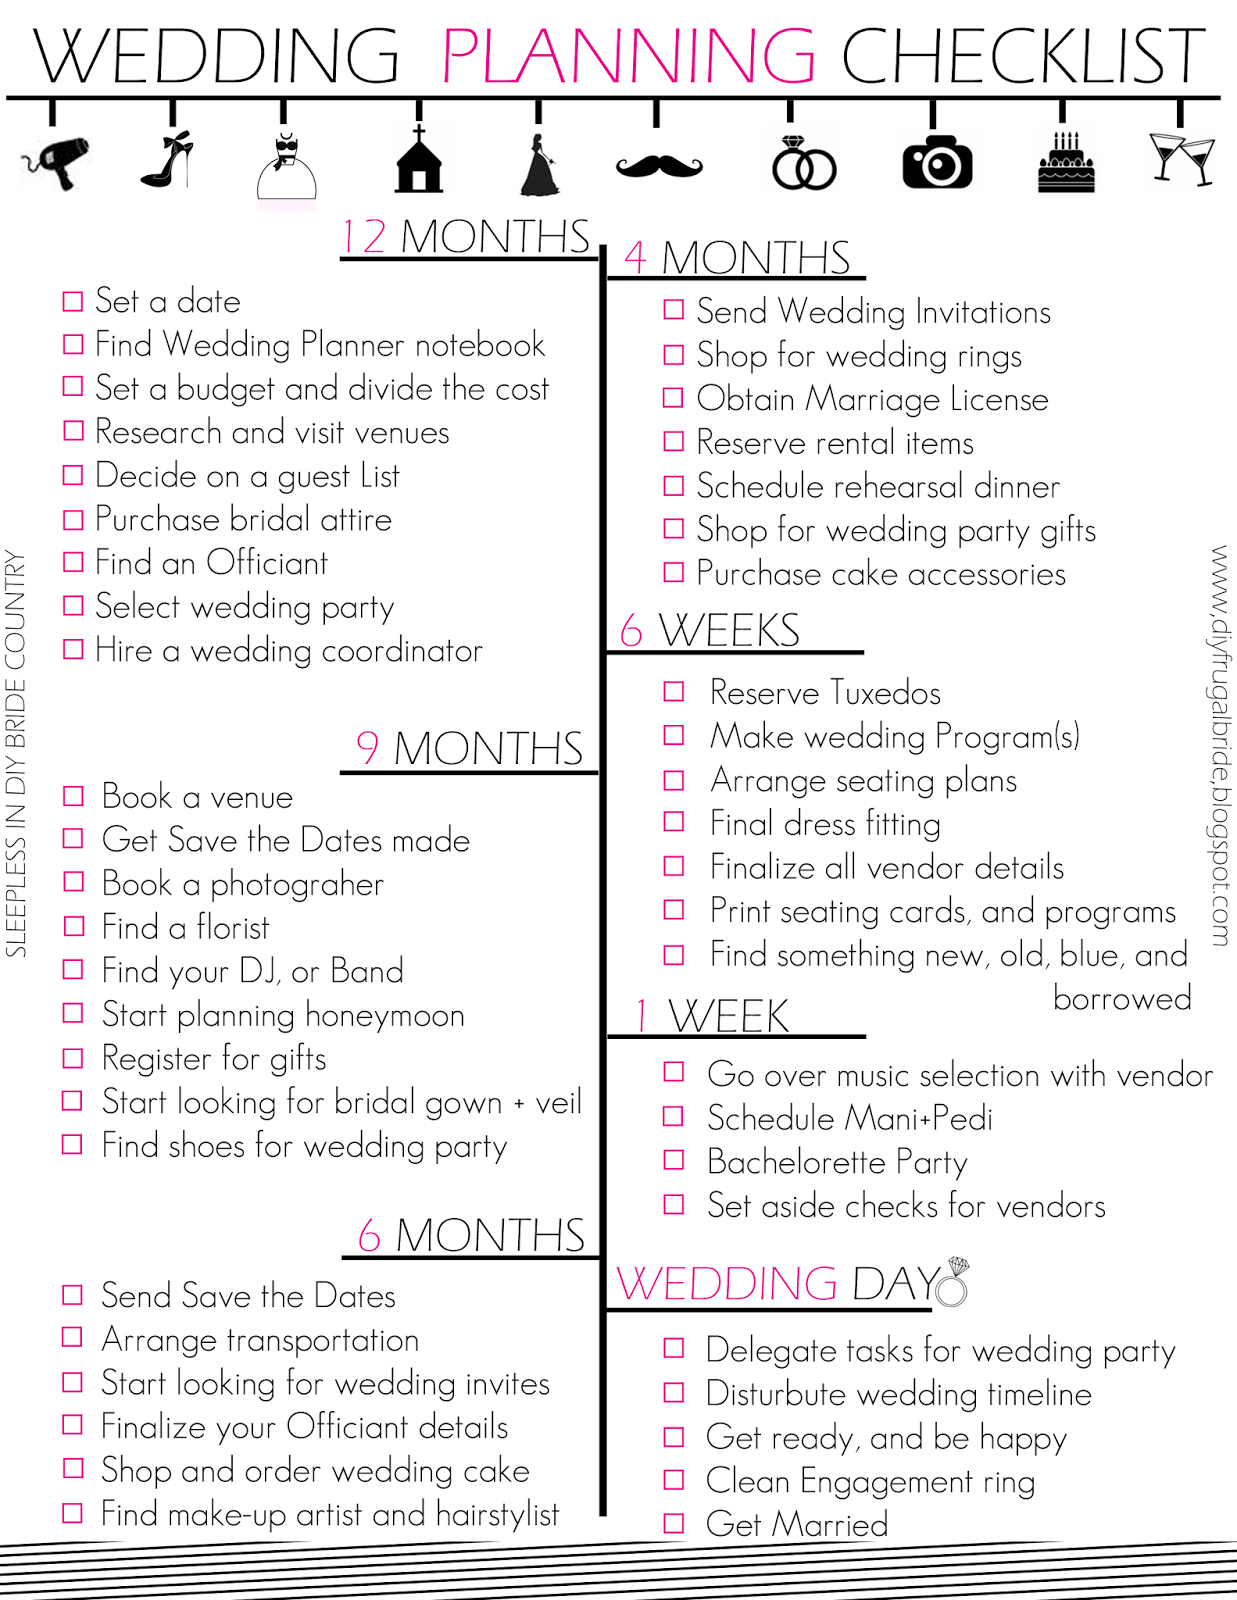 Budget Bride Wedding Checklist And Budget Tips | Projects To Try In - Free Printable Wedding Checklist